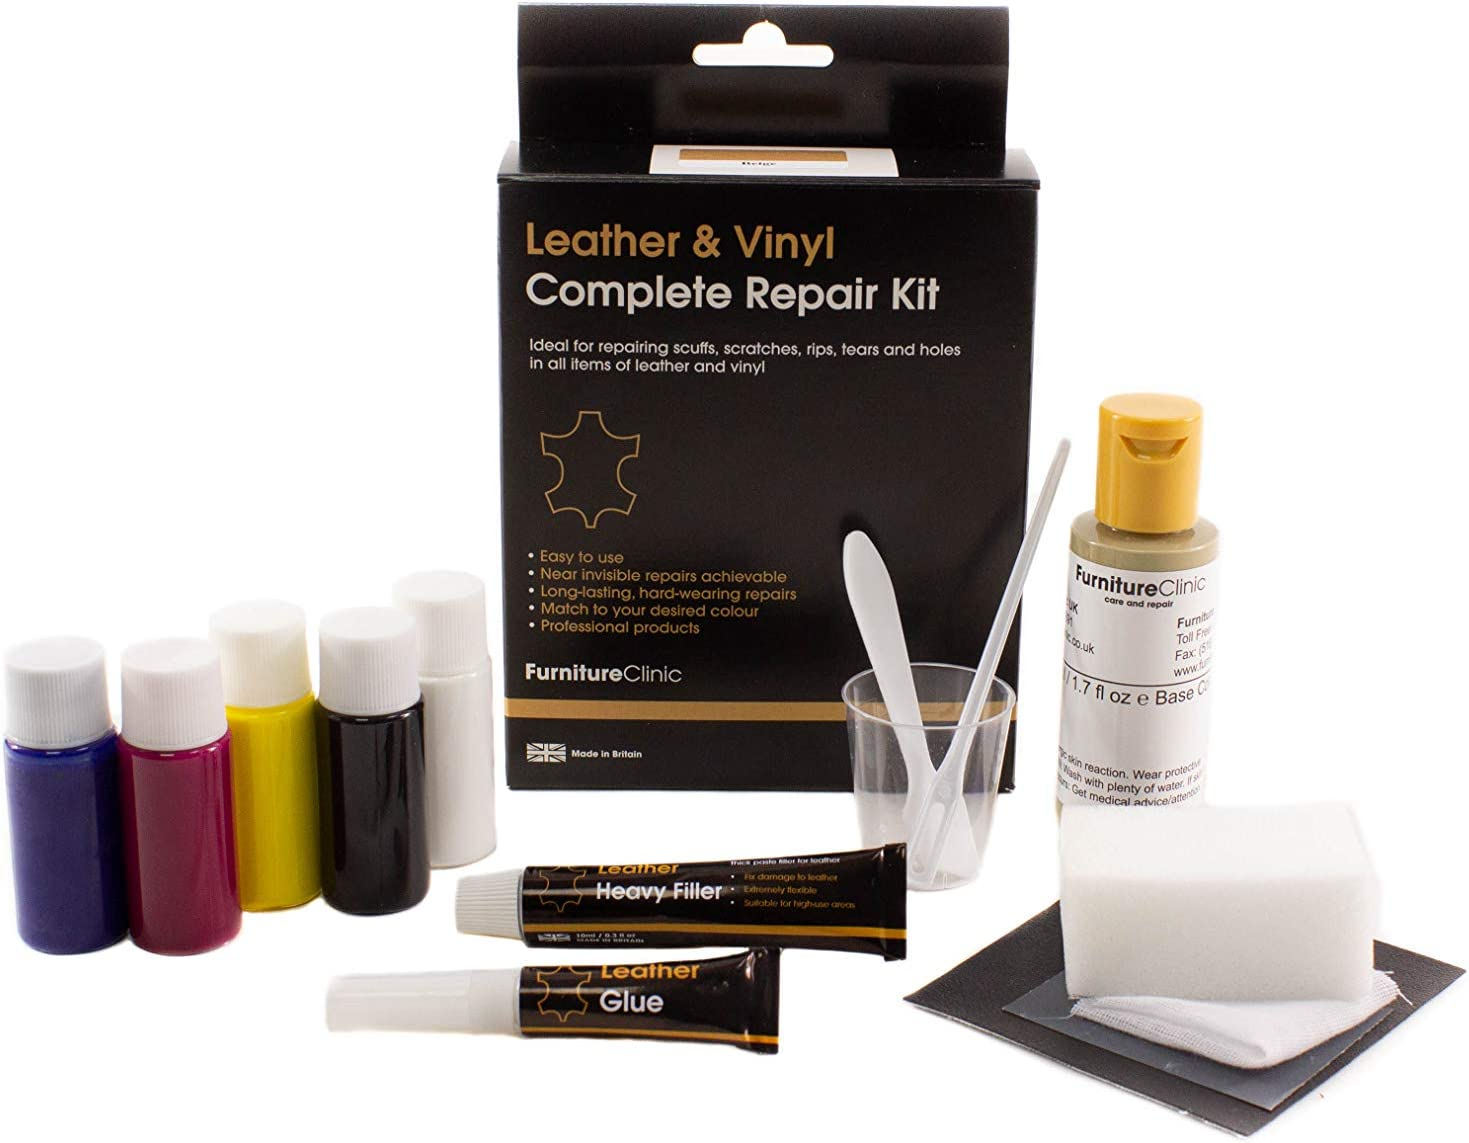 Furniture Clinic Leather & Vinyl Repair Kit - Best Leather Repair Kit for Couches, Car Seats & Furniture - Fix Damaged Vinyl, Leather - Quickly Repair Rips, Holes, Tears & Burns - Easy to Use (Black)